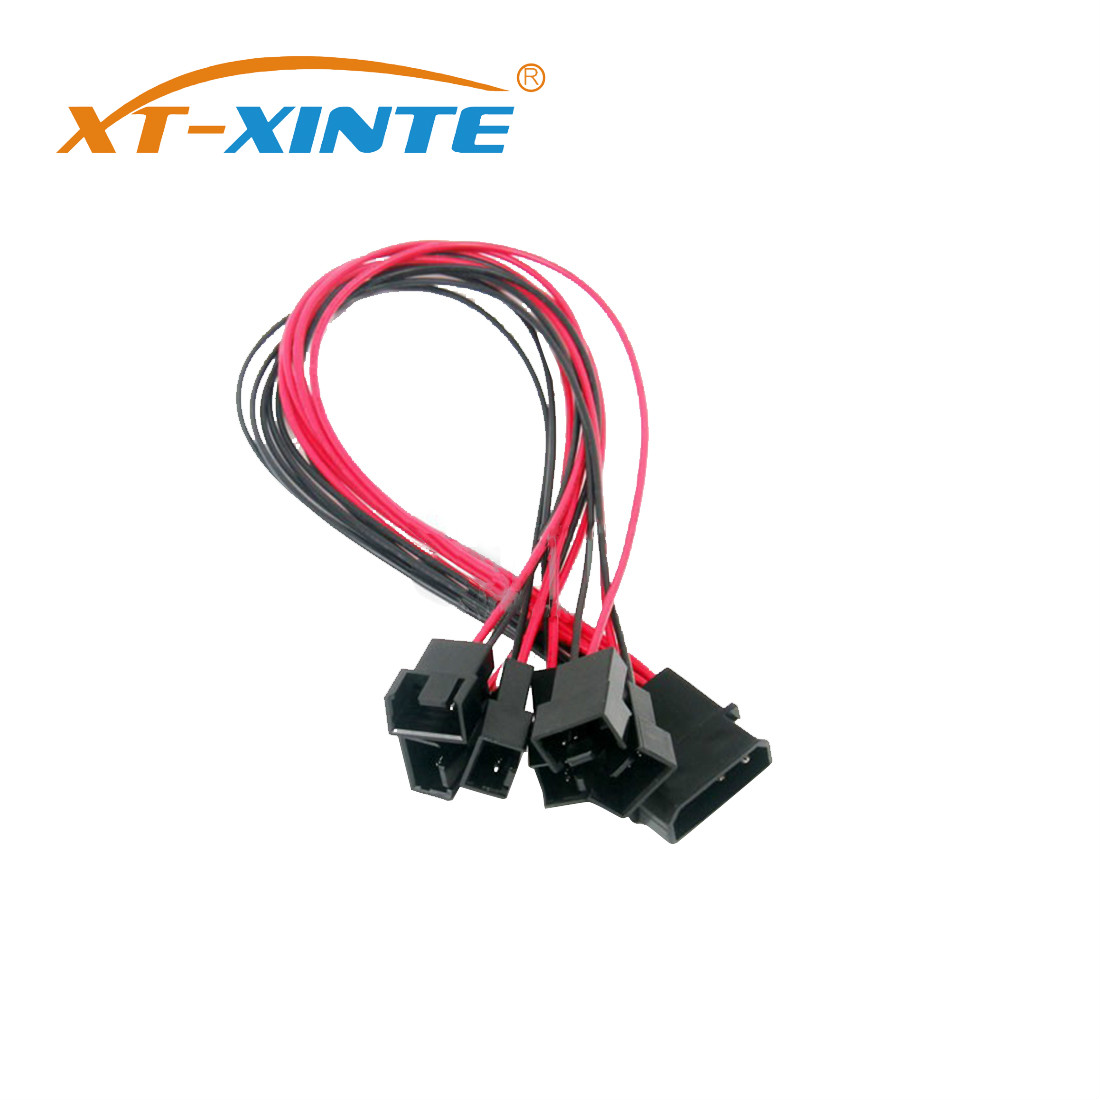 Black Sleeved 30cm Cooler Cooling Fan Splitter Power Cable 12V 4-Pin to 6 Port 3Pin/4Pin Connector for Molex IDE Computer PC DIY